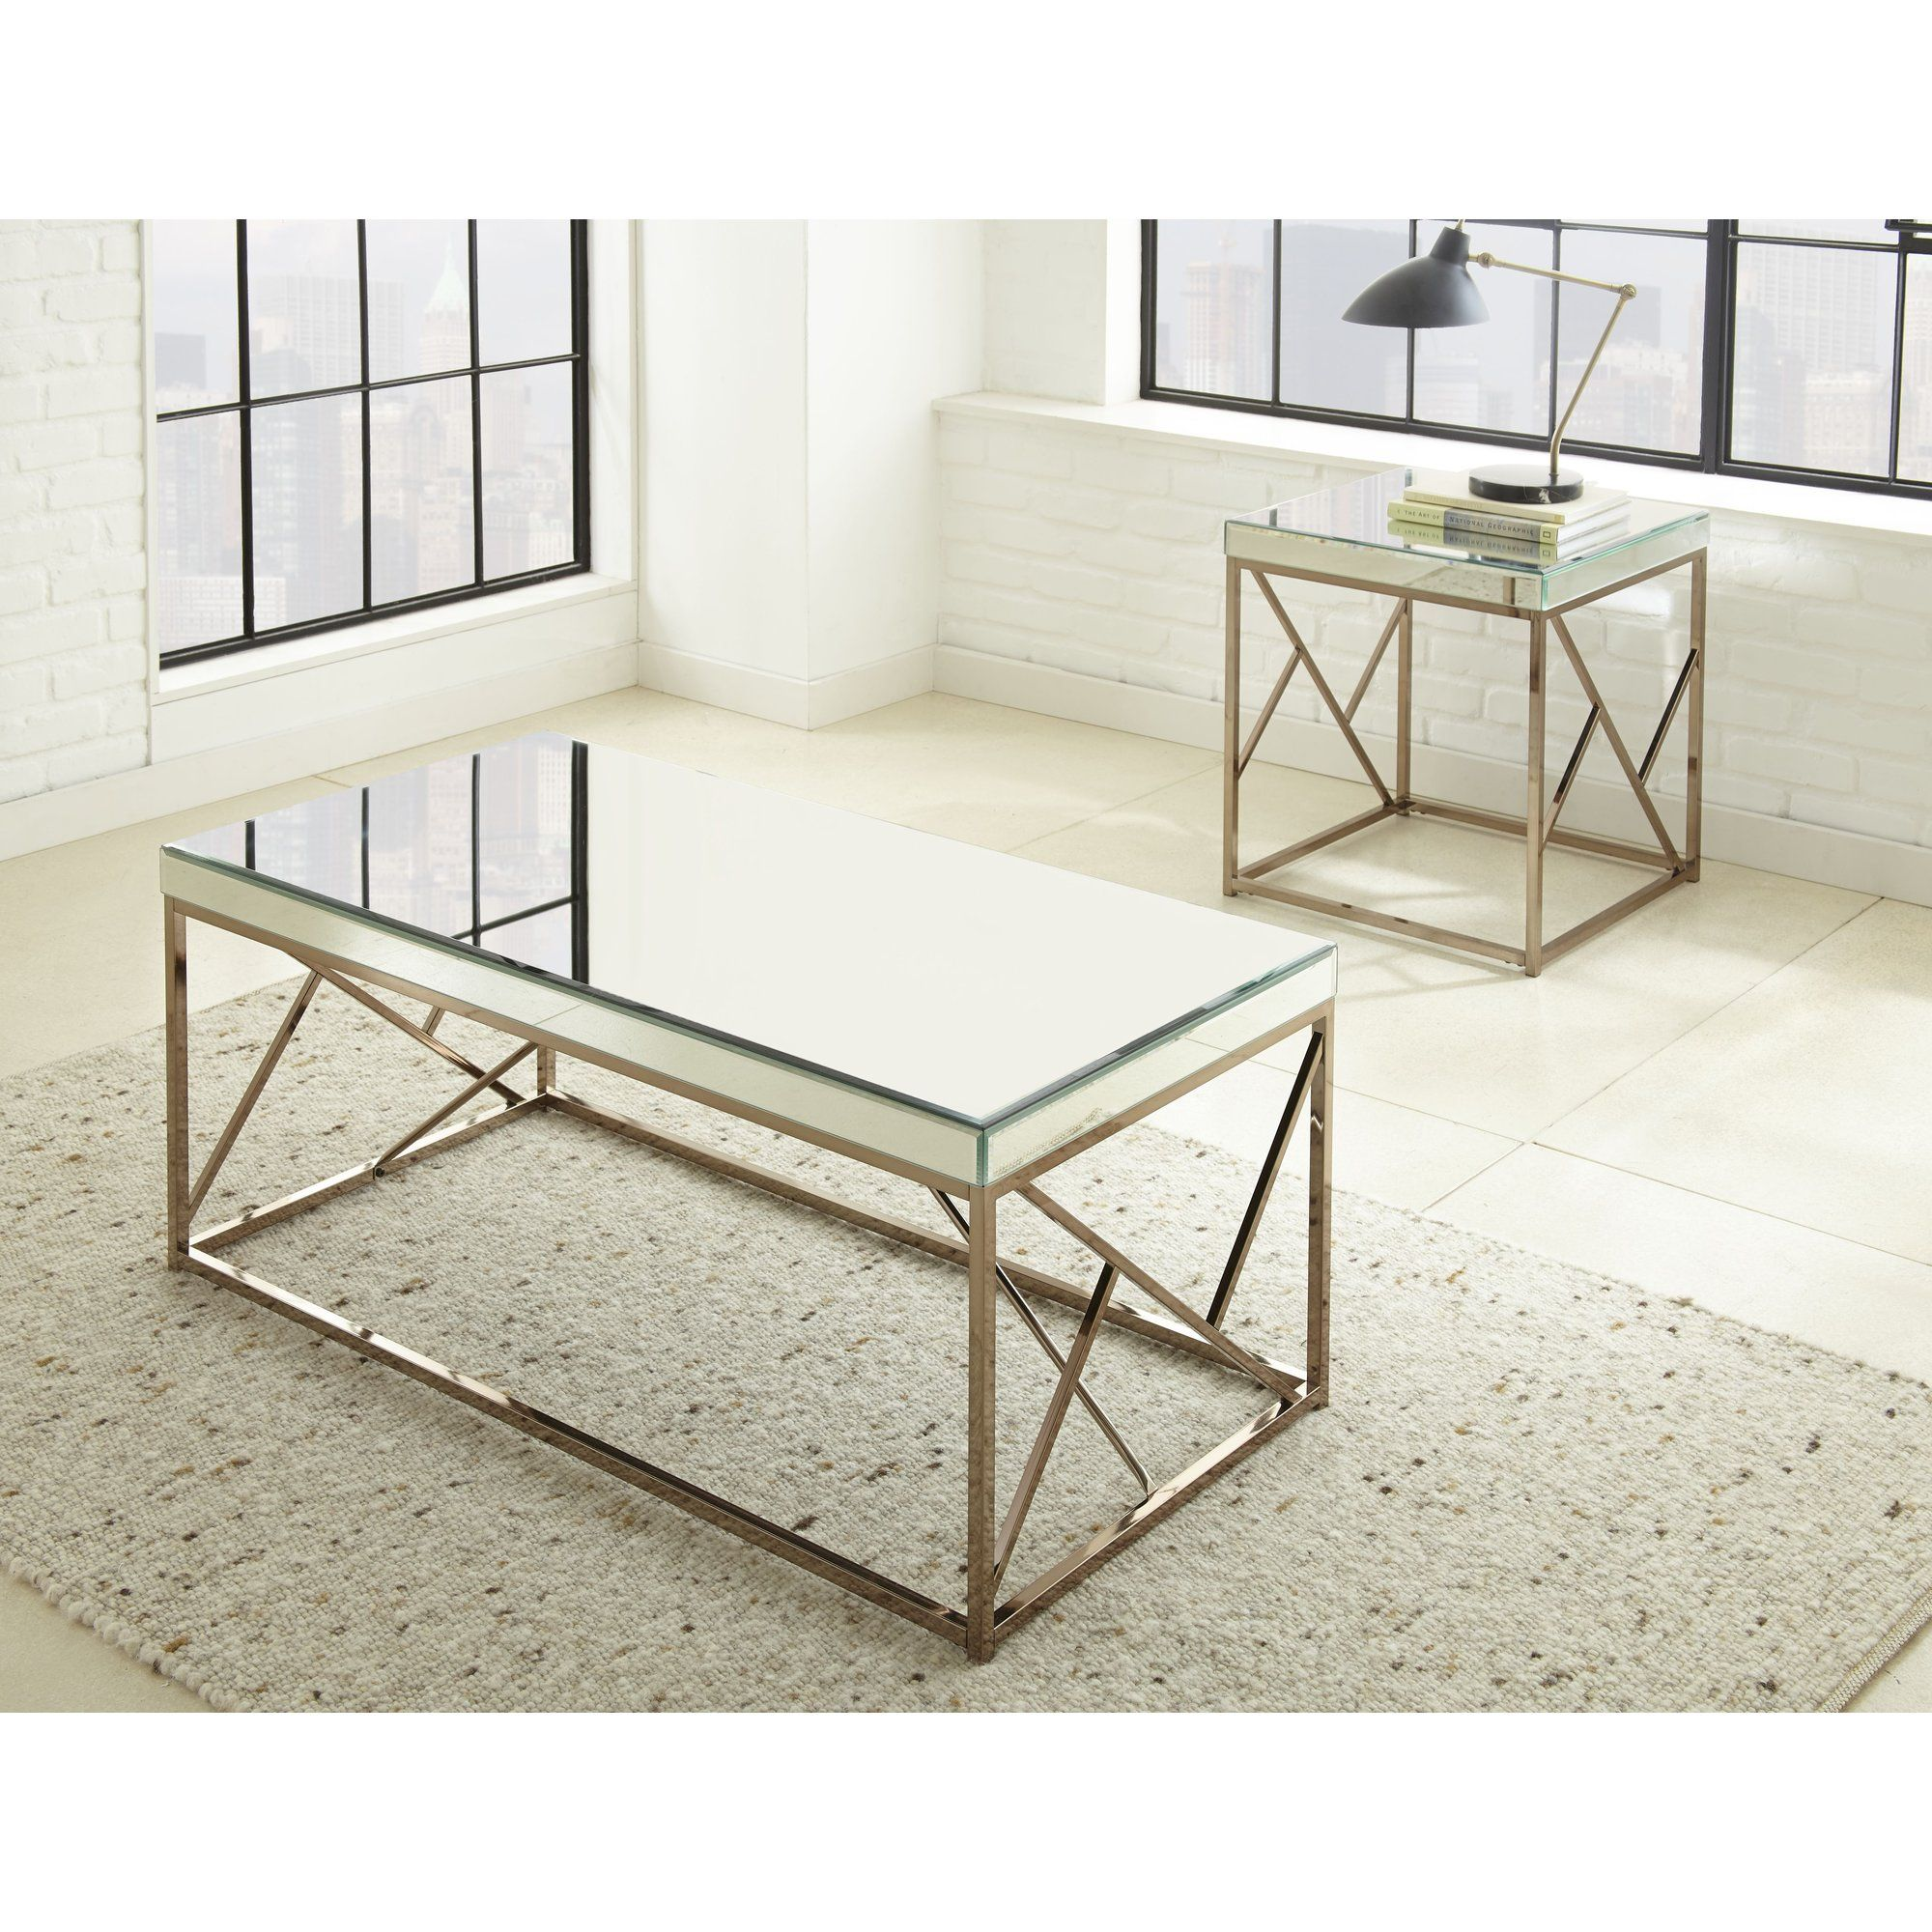 Hendrix 2 piece coffee table set home is where the heart is hendrix 2 piece coffee table set geotapseo Choice Image